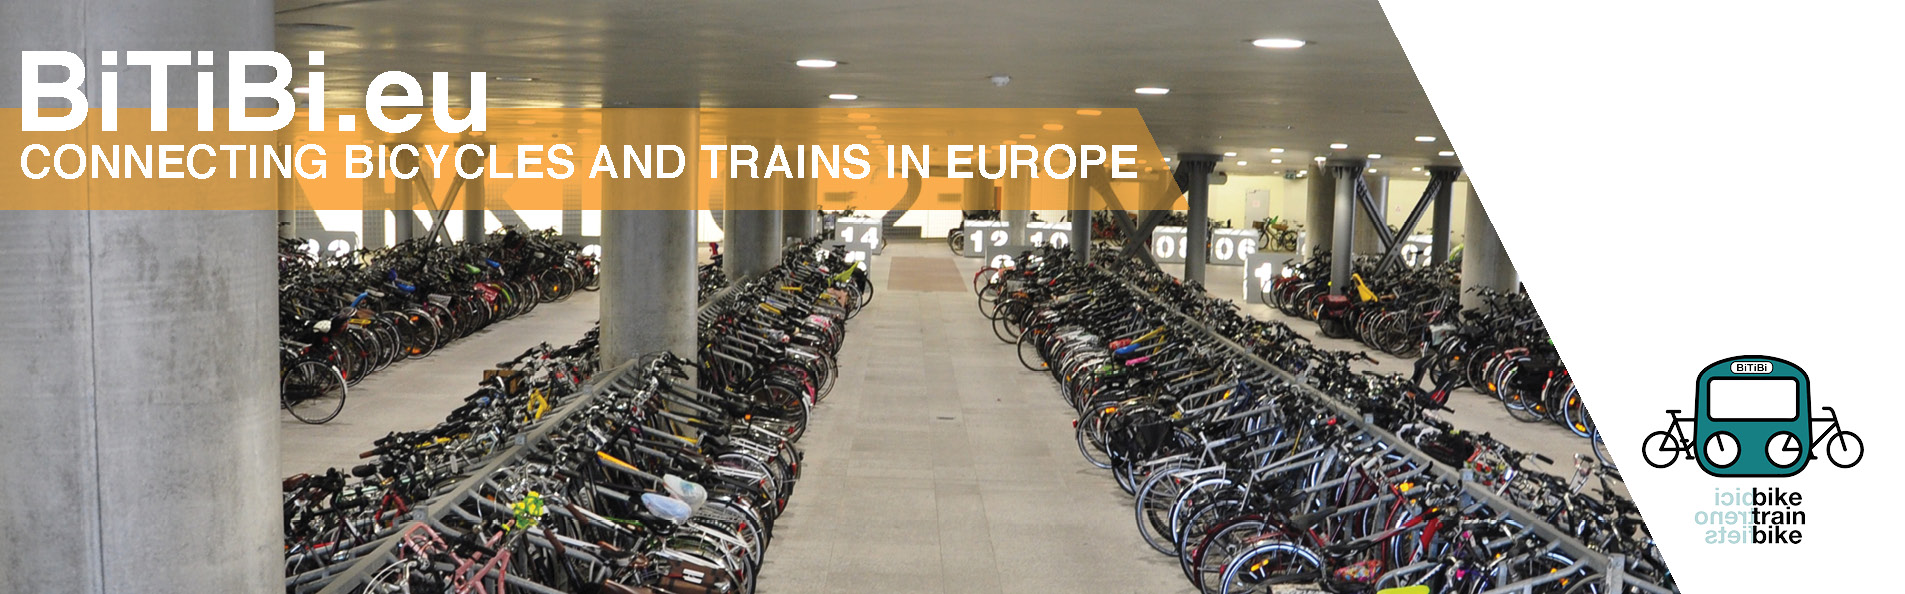 BiTiBi - Combining bicycles with rail transport in Europe